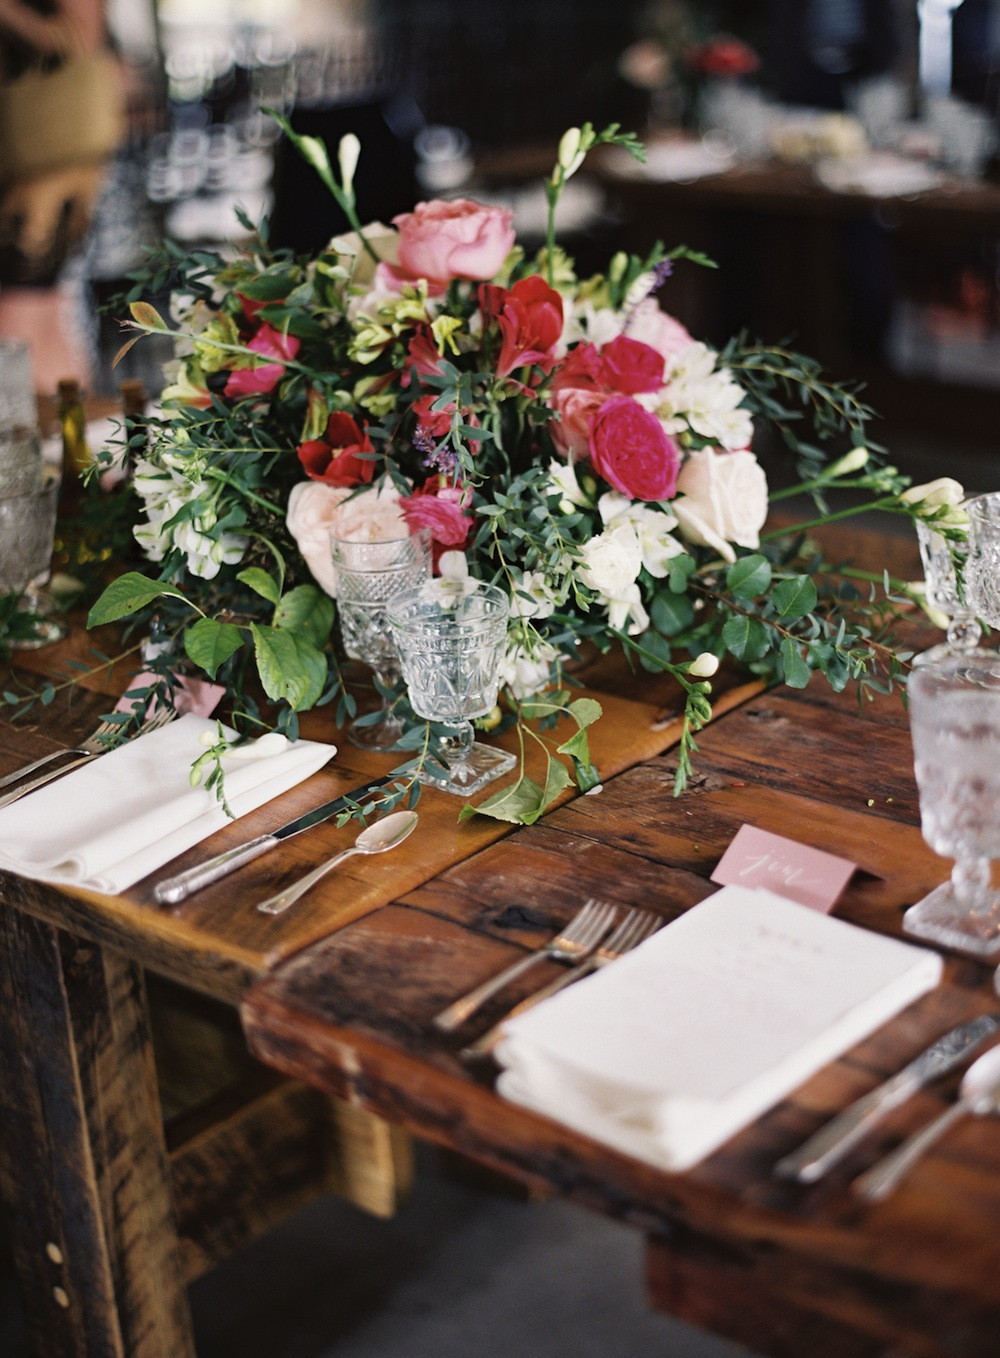 Southern Vintage rental silver flatware and clear stemware help create an elegant table setting!